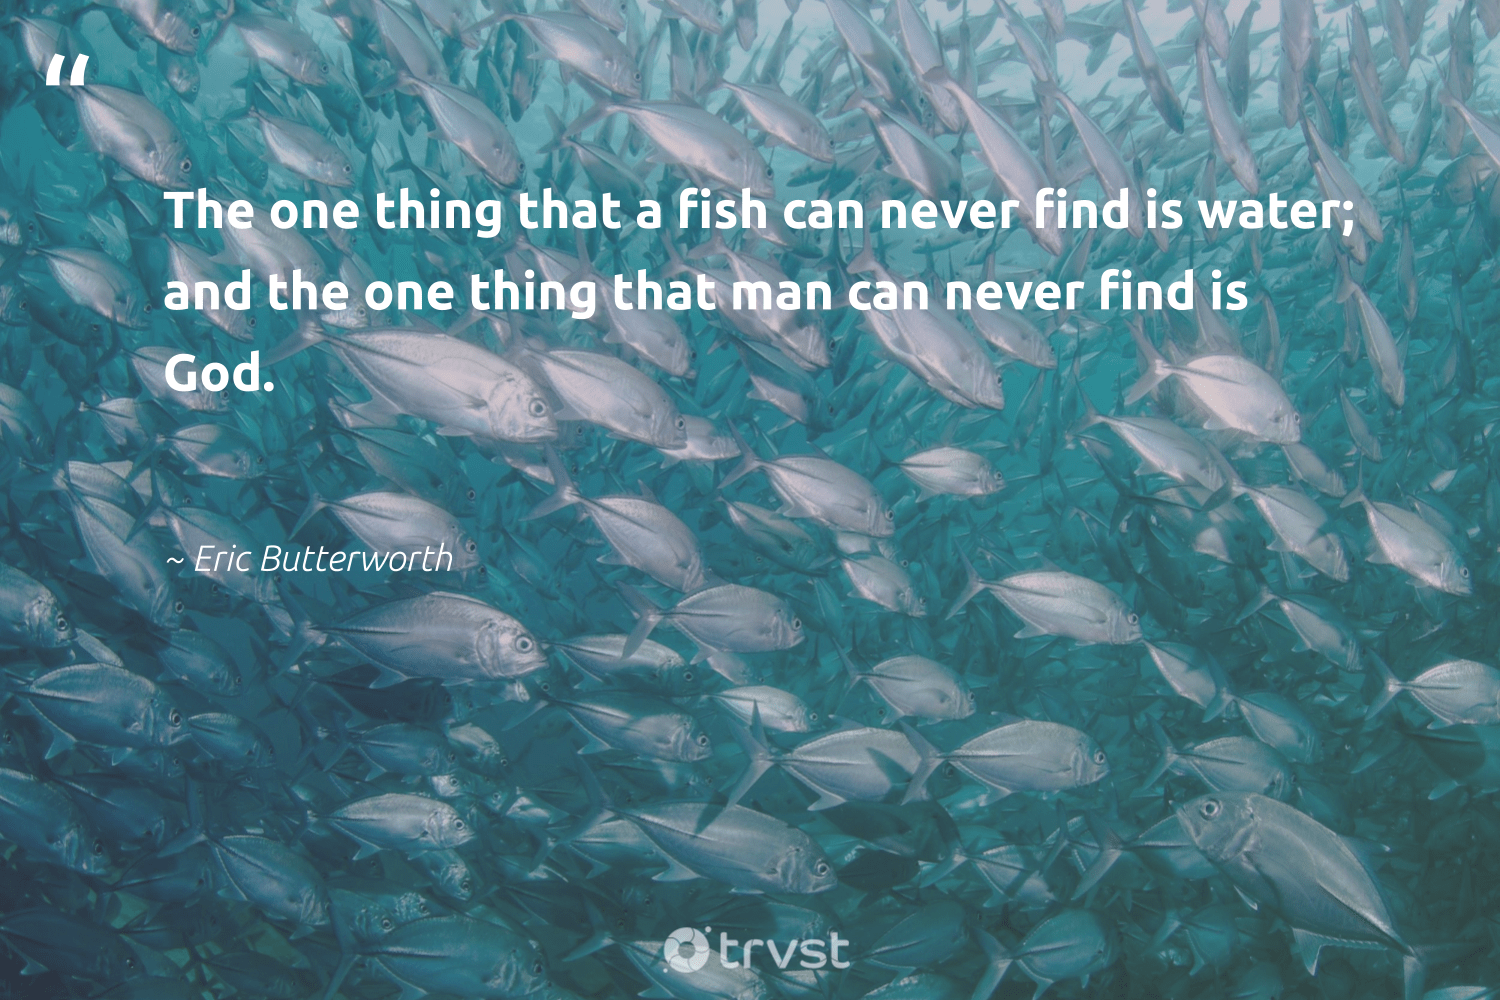 """""""The one thing that a fish can never find is water; and the one thing that man can never find is God.""""  - Eric Butterworth #trvst #quotes #fish #nature #beinspired #perfectnature #planetearthfirst #intheocean #ecoconscious #sustainablefishing #dosomething #oceans"""